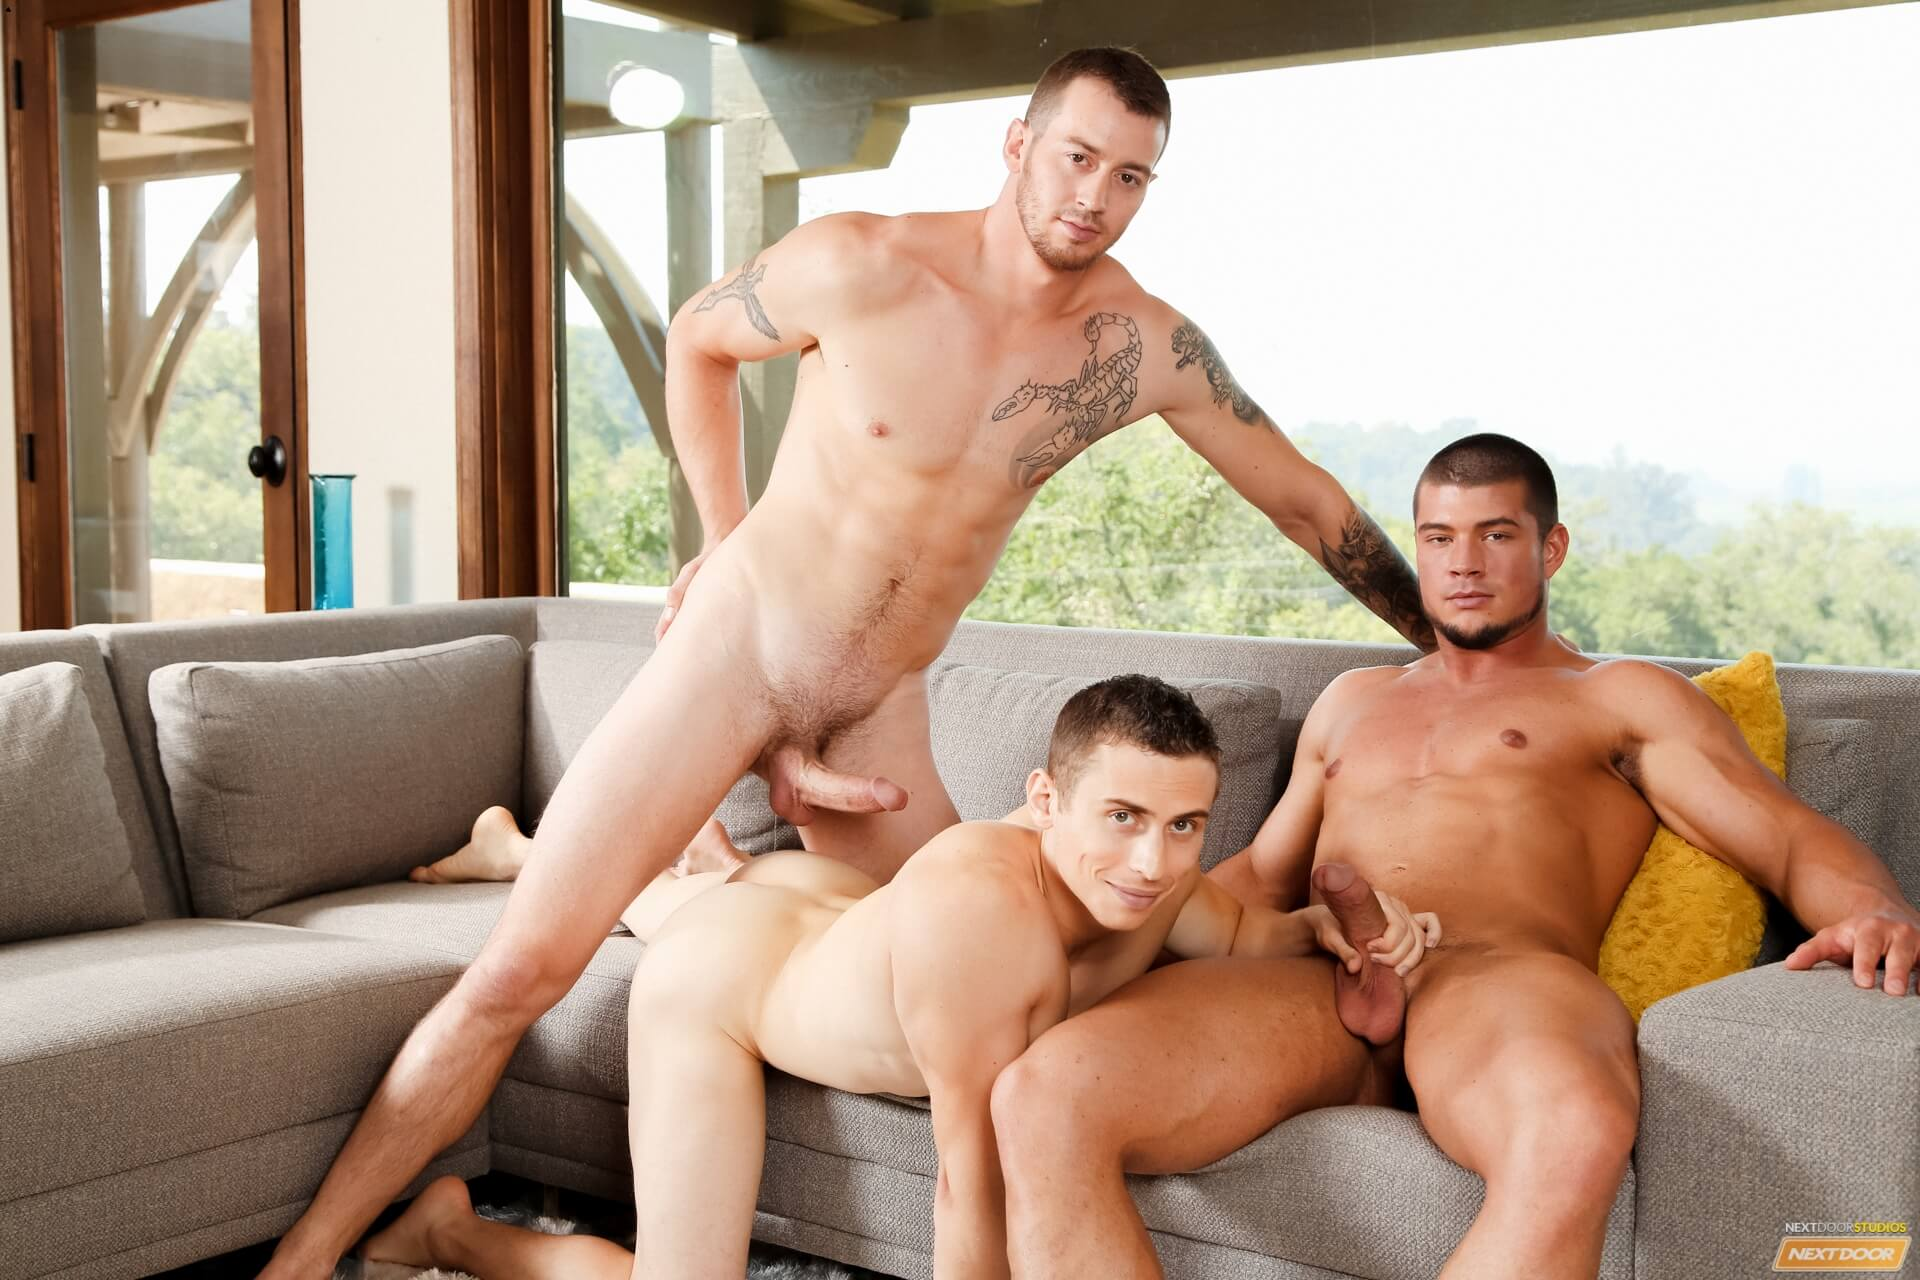 image Amazing gay scene bryan makes kyler squirm